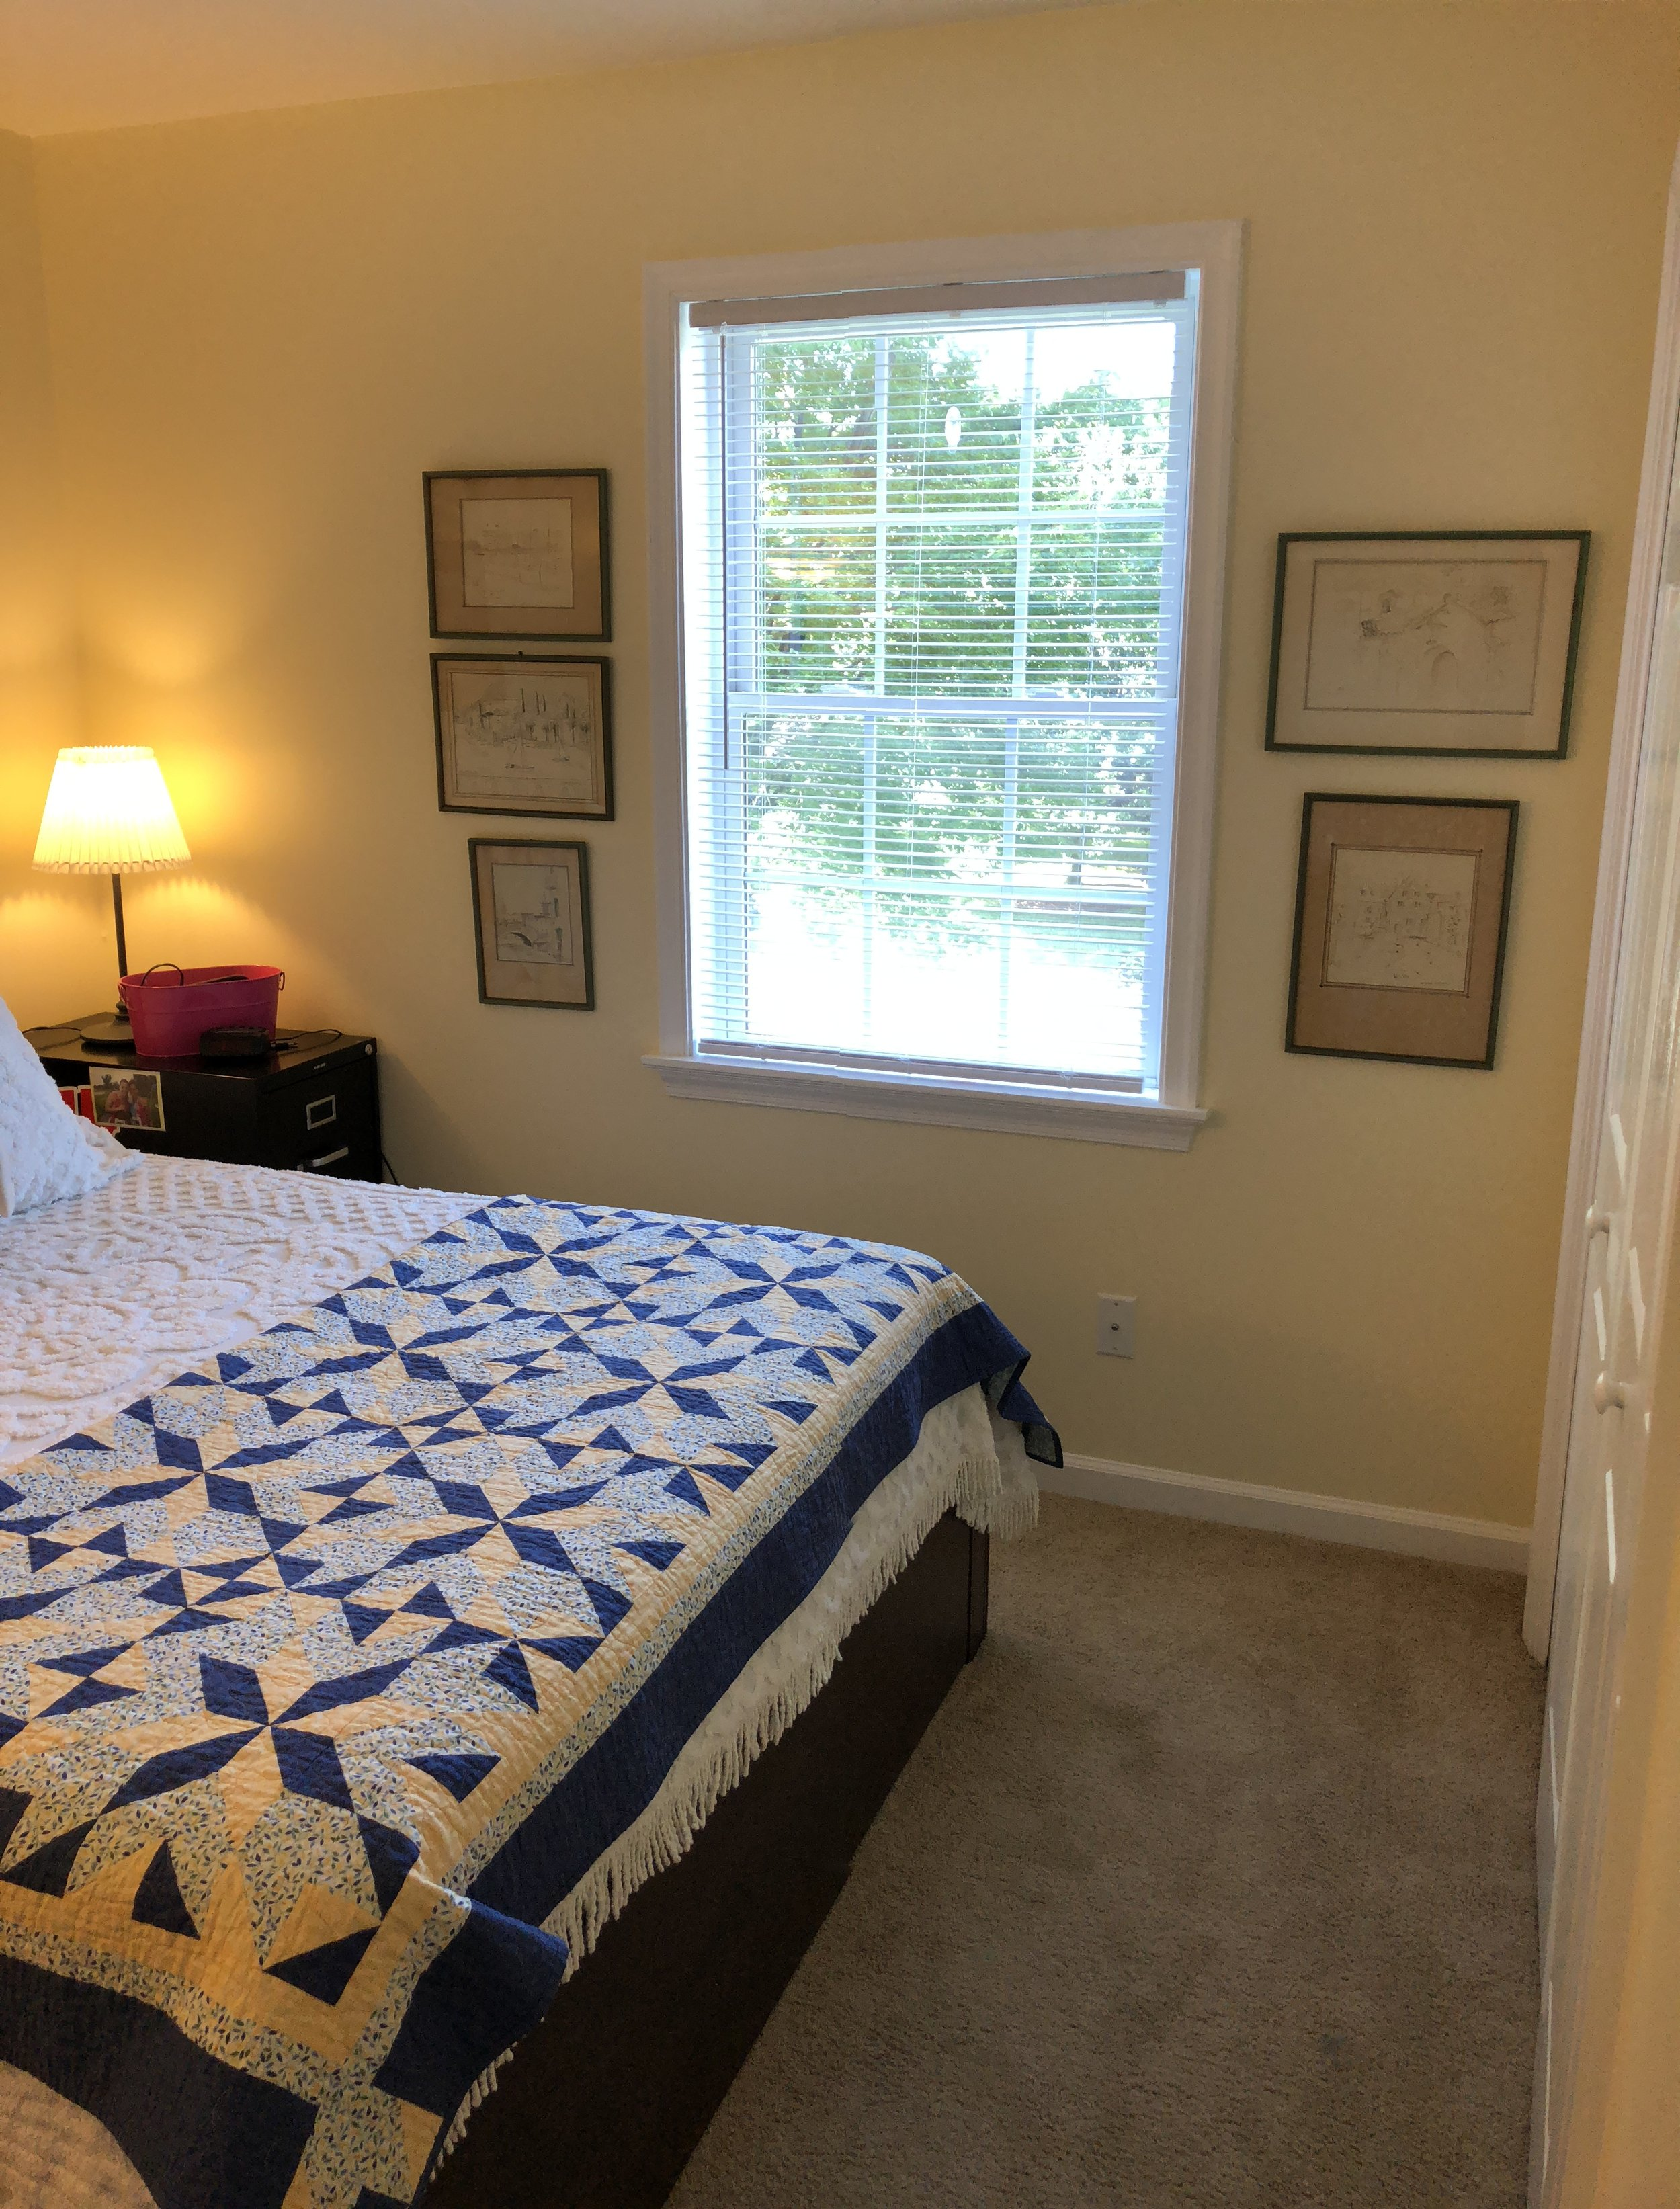 Here is the finished product of the first bedroom. So much brighter with the paint!